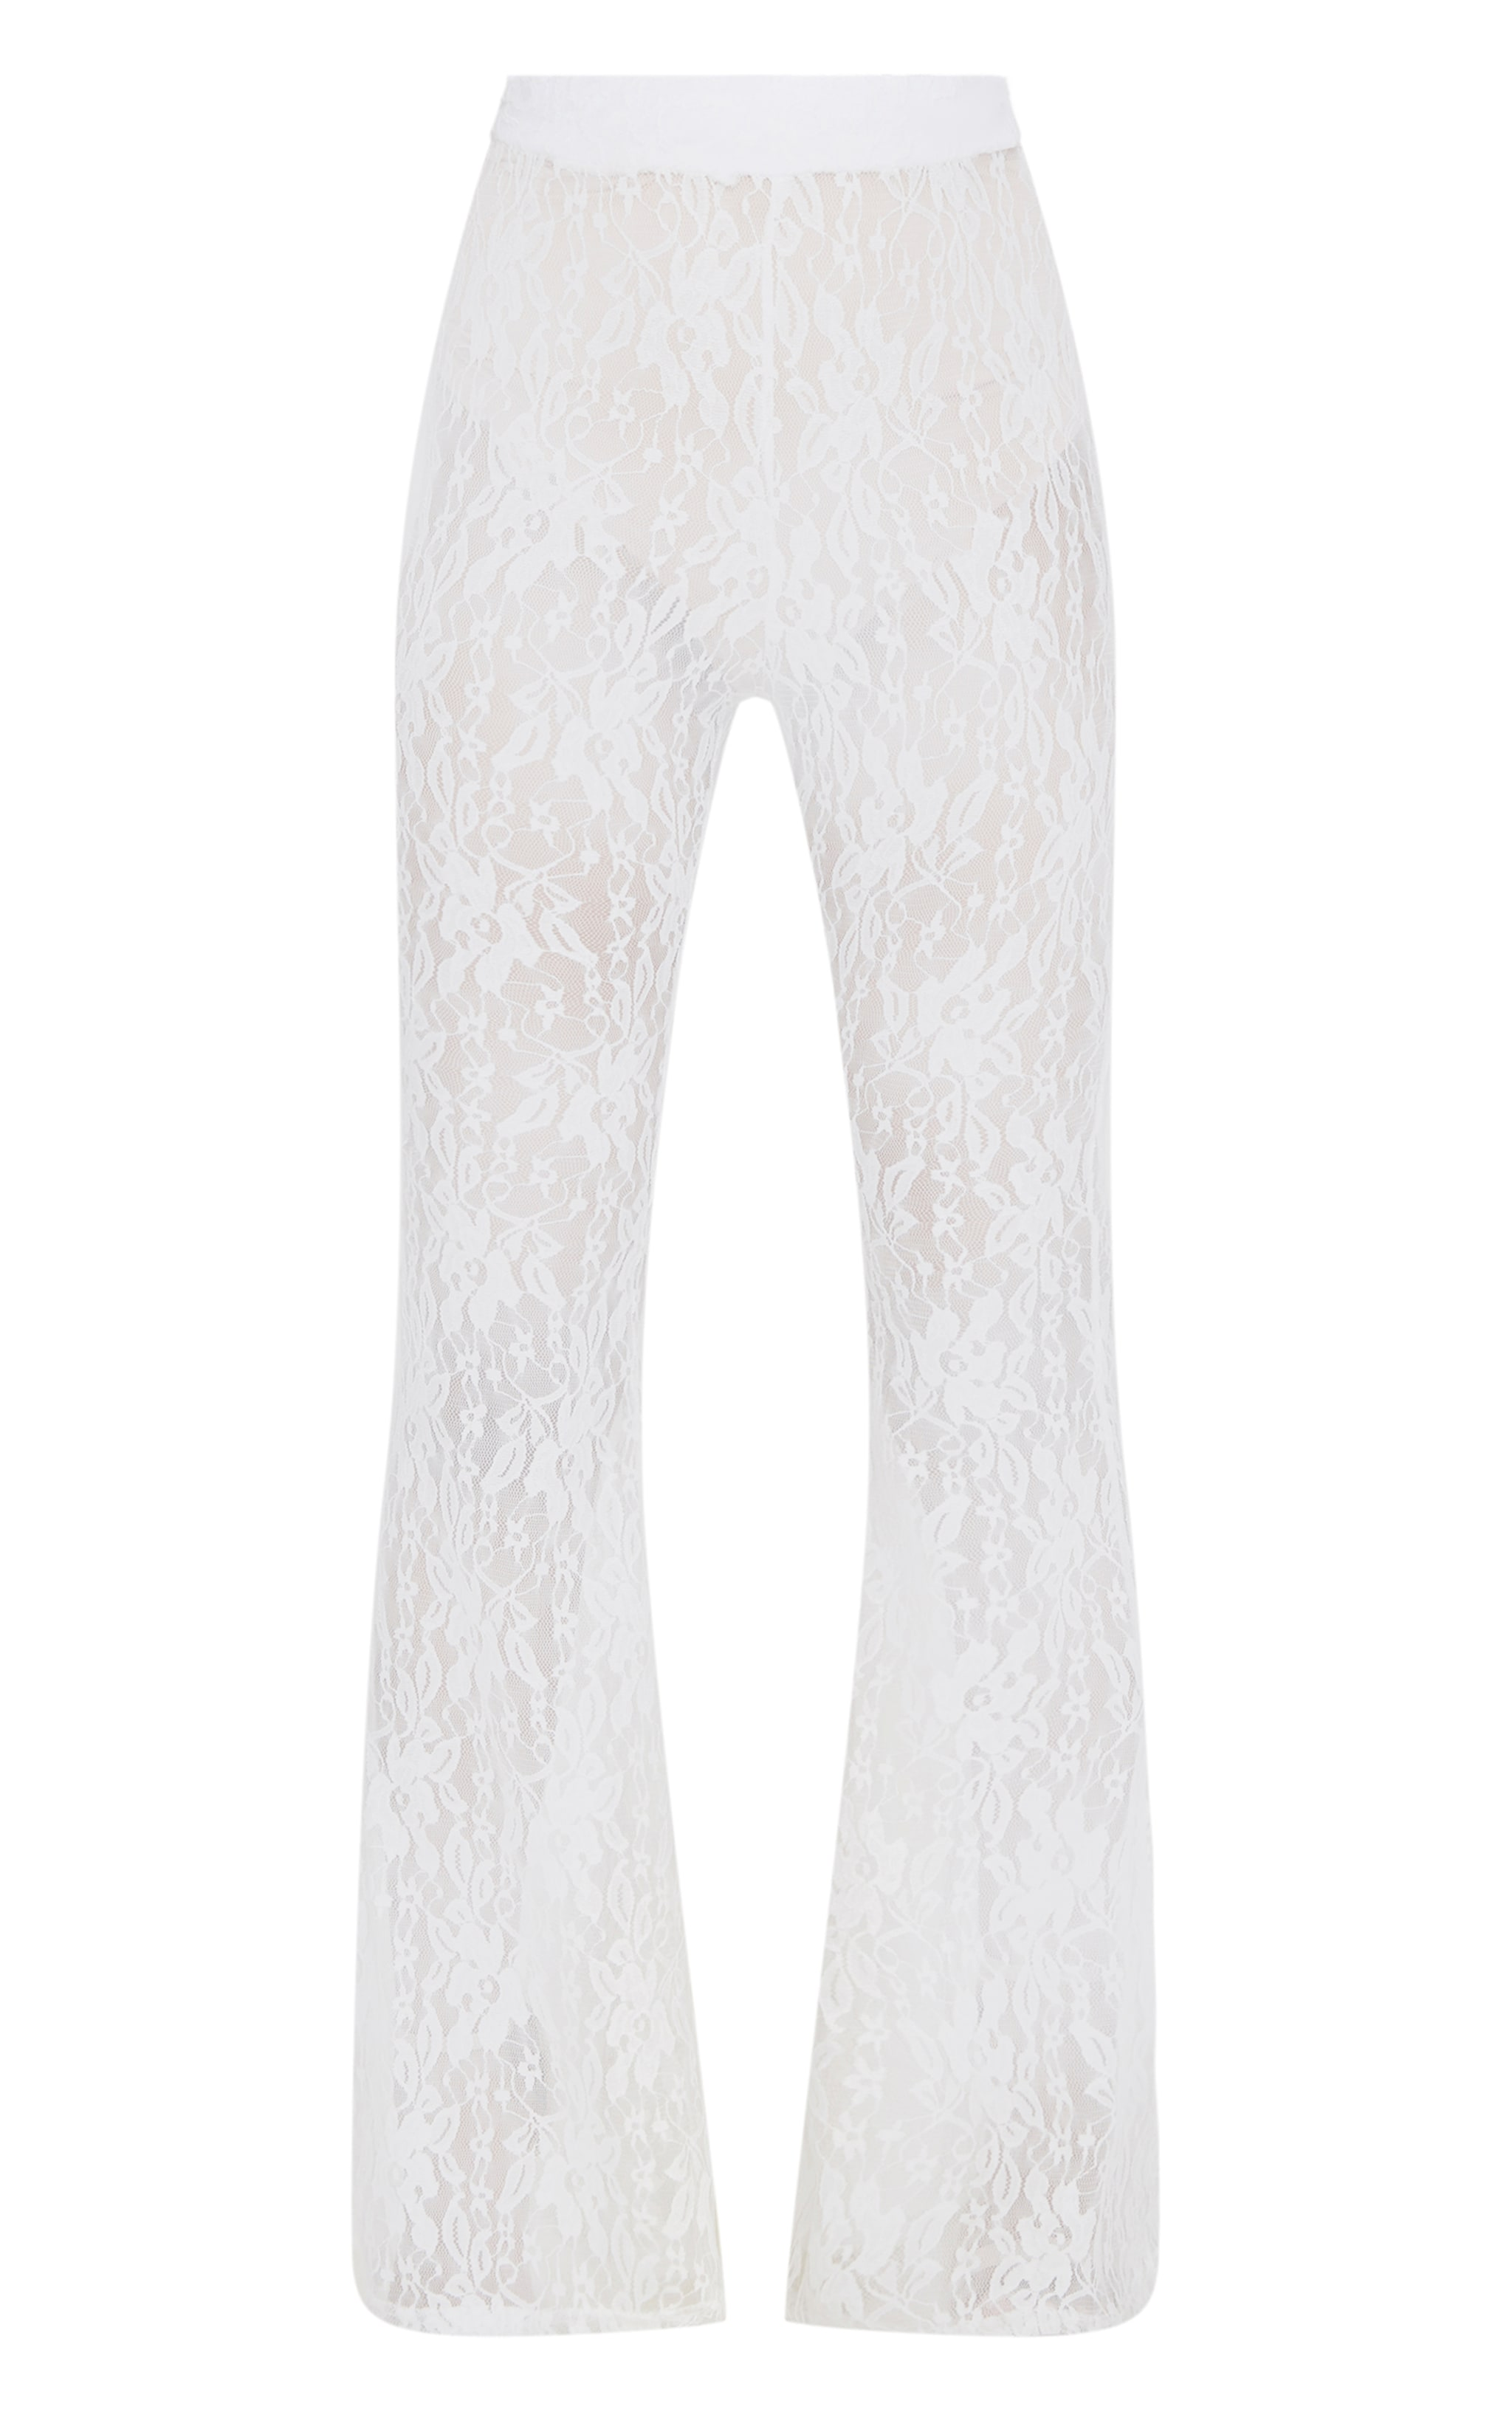 Petite White Flared Lace Trousers 3